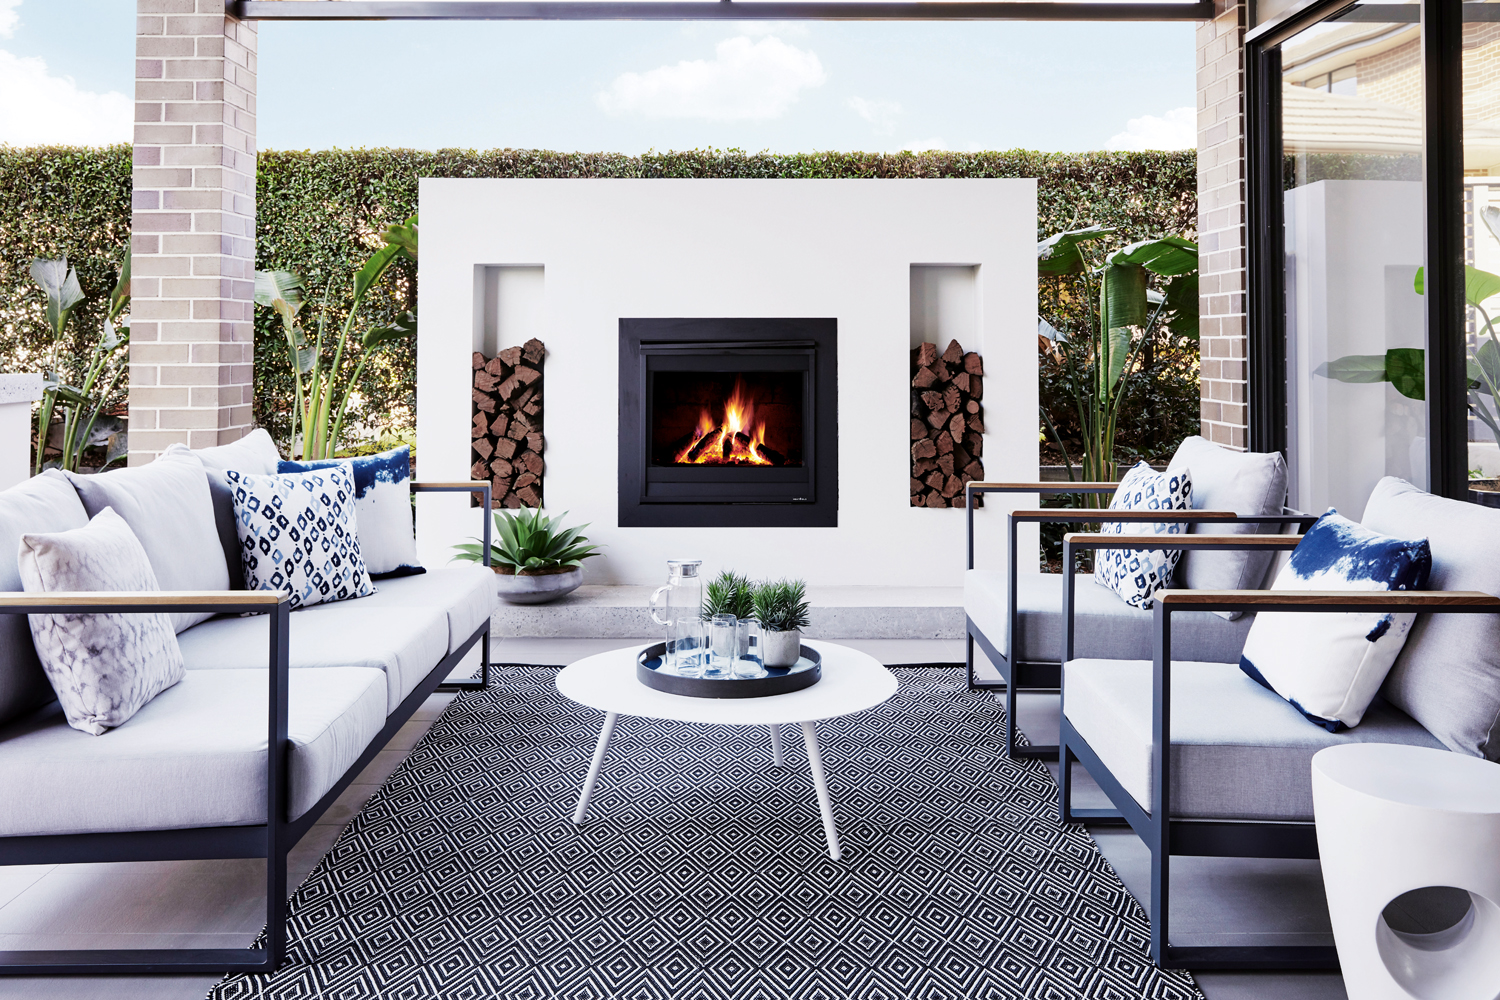 Touch of glamour: a chic home design with granny flat